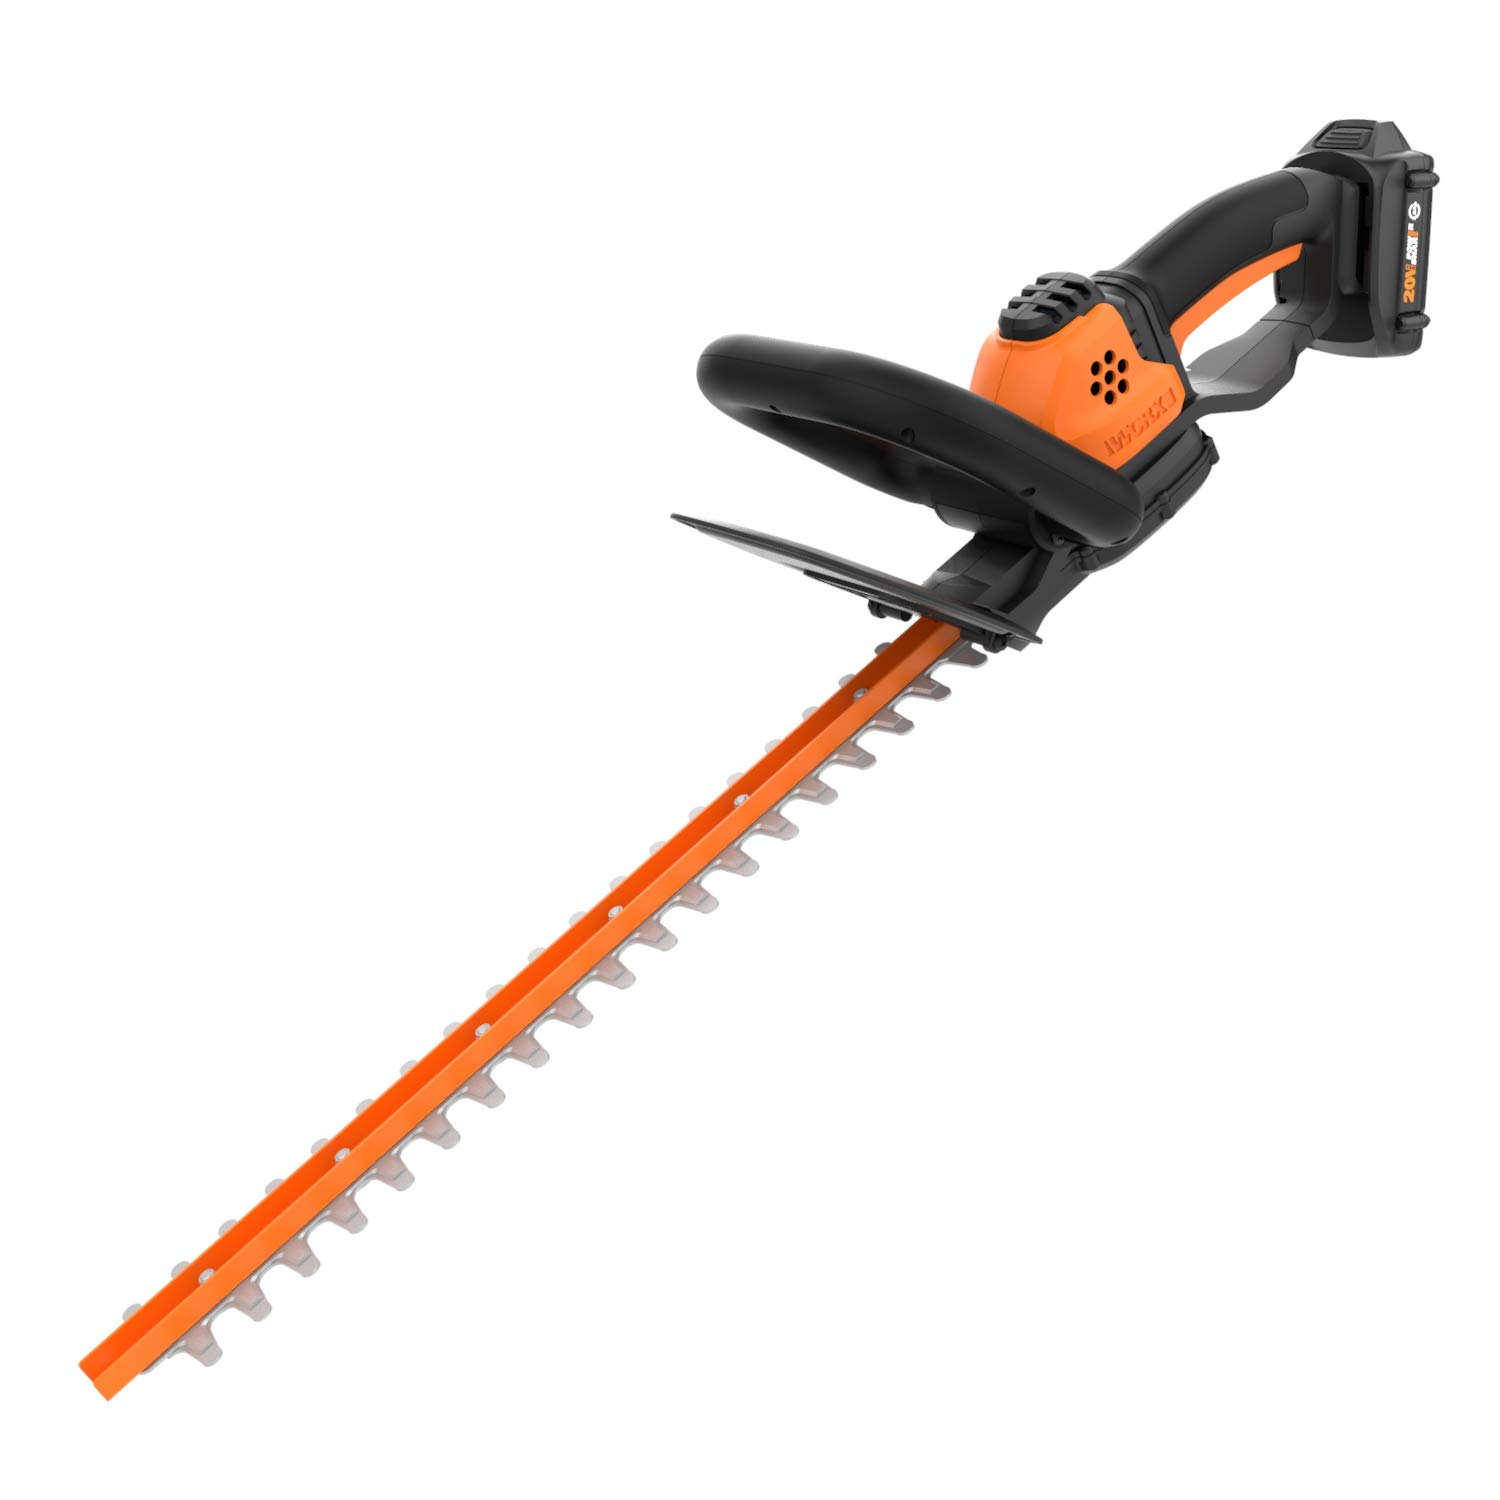 WORX WG261 20V (2.0Ah) Power Share 20-inch Cordless Hedge Trimmer, Battery and Charger included